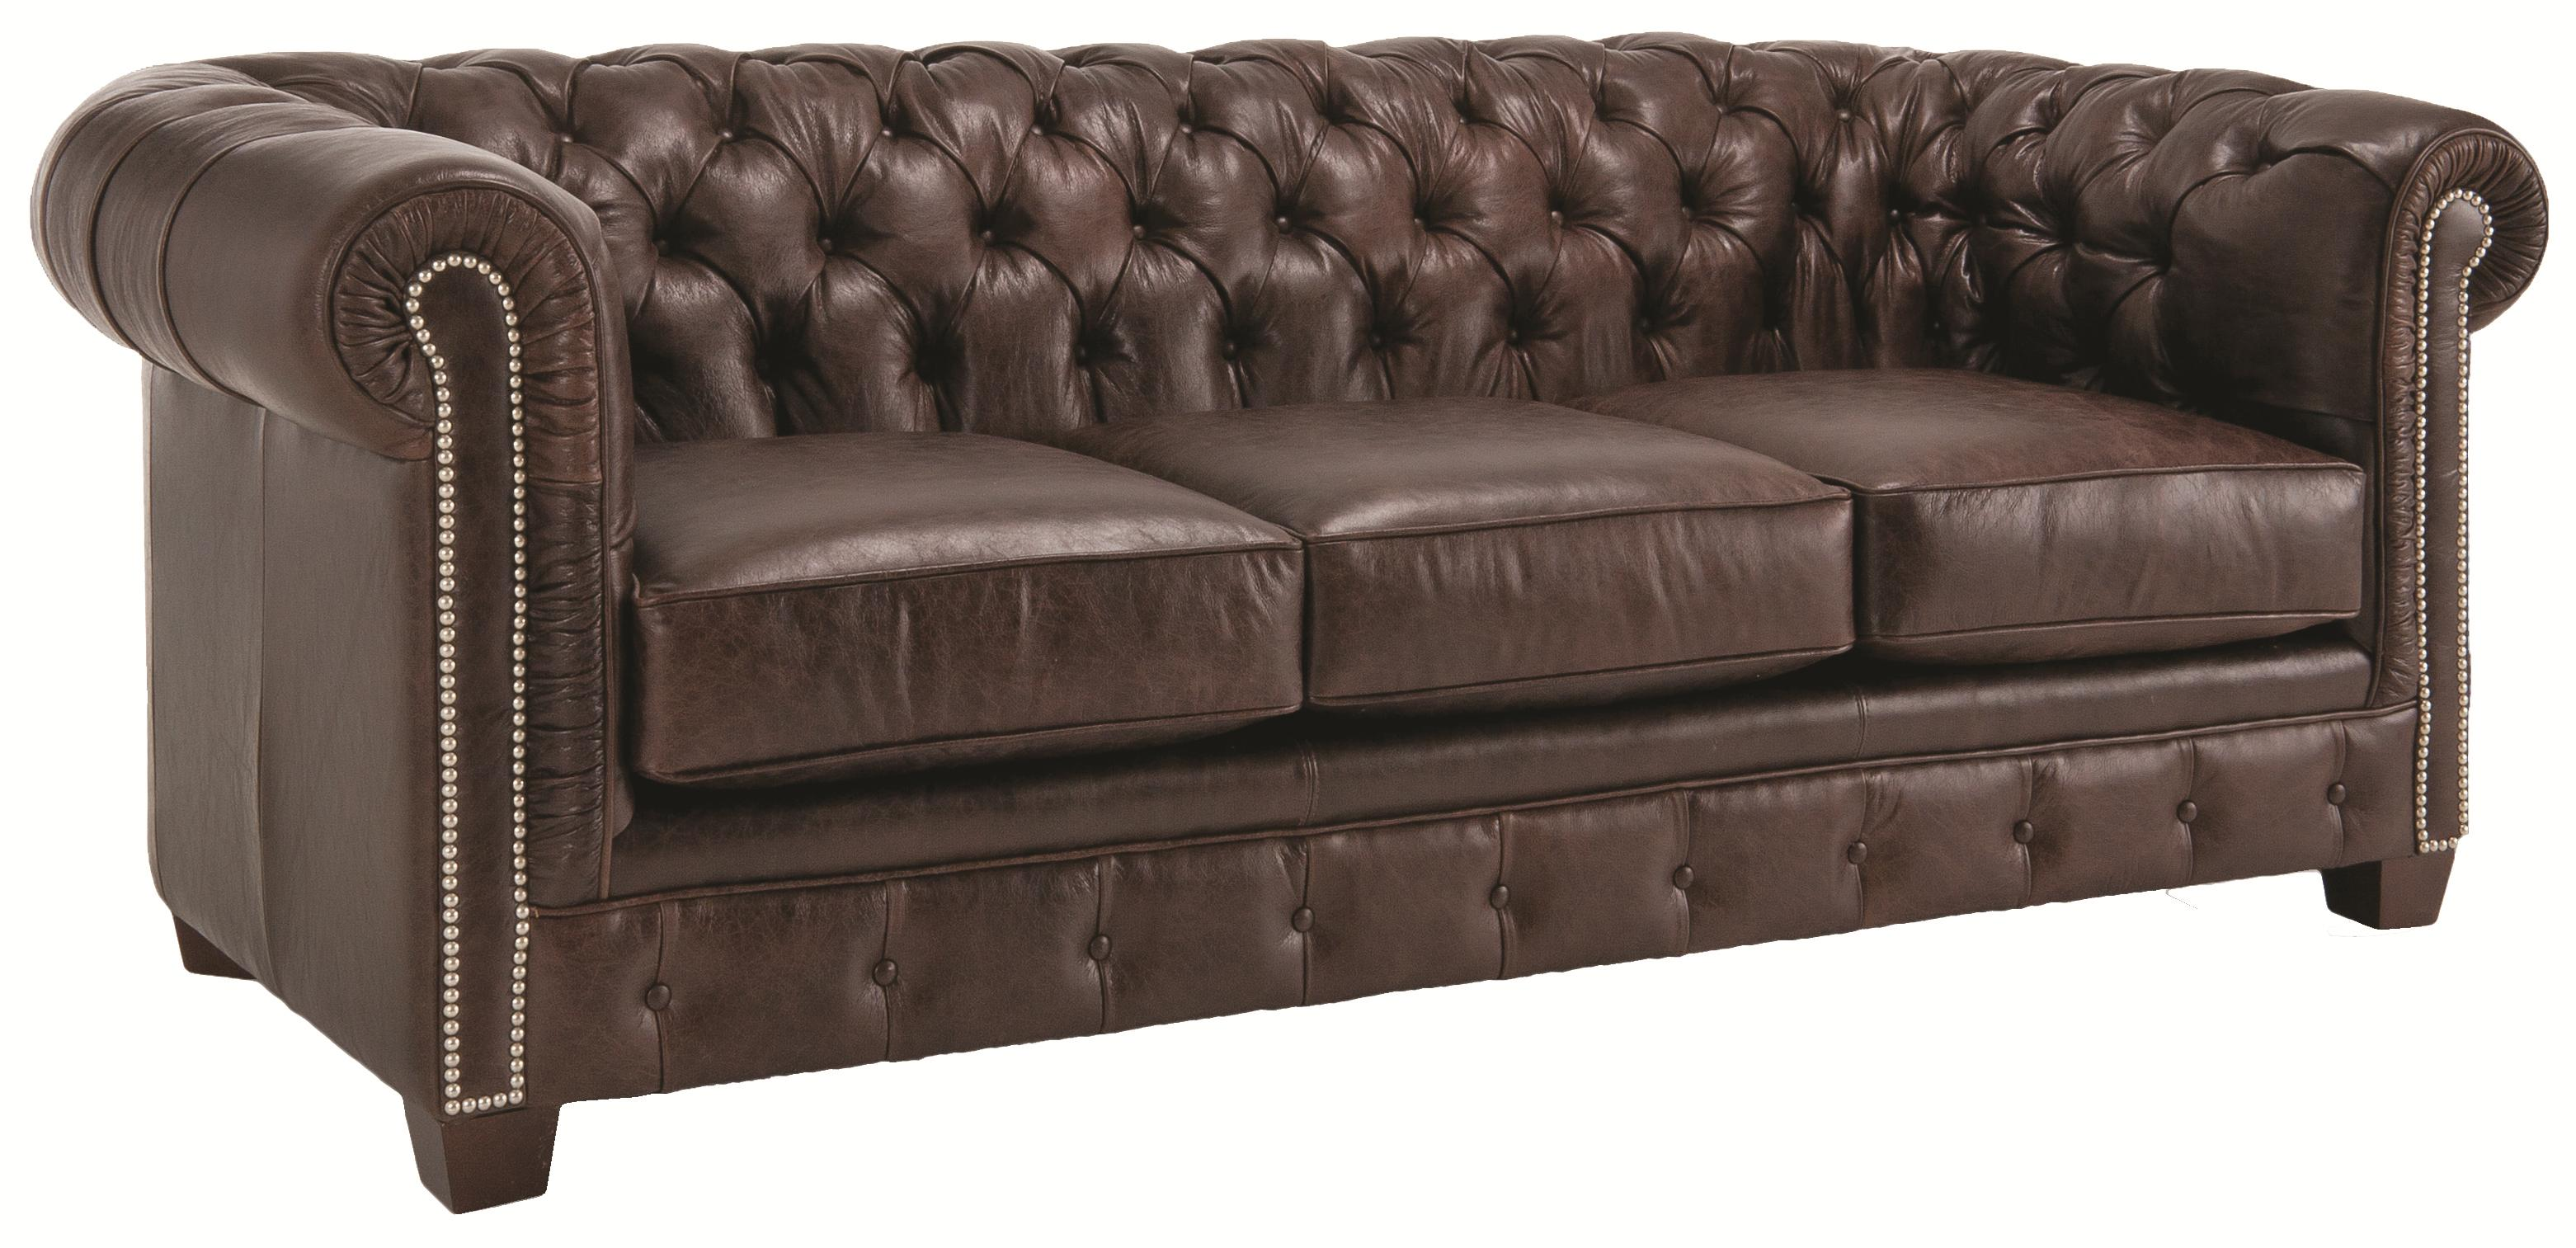 3230  Sofa by Decor-Rest at Johnny Janosik